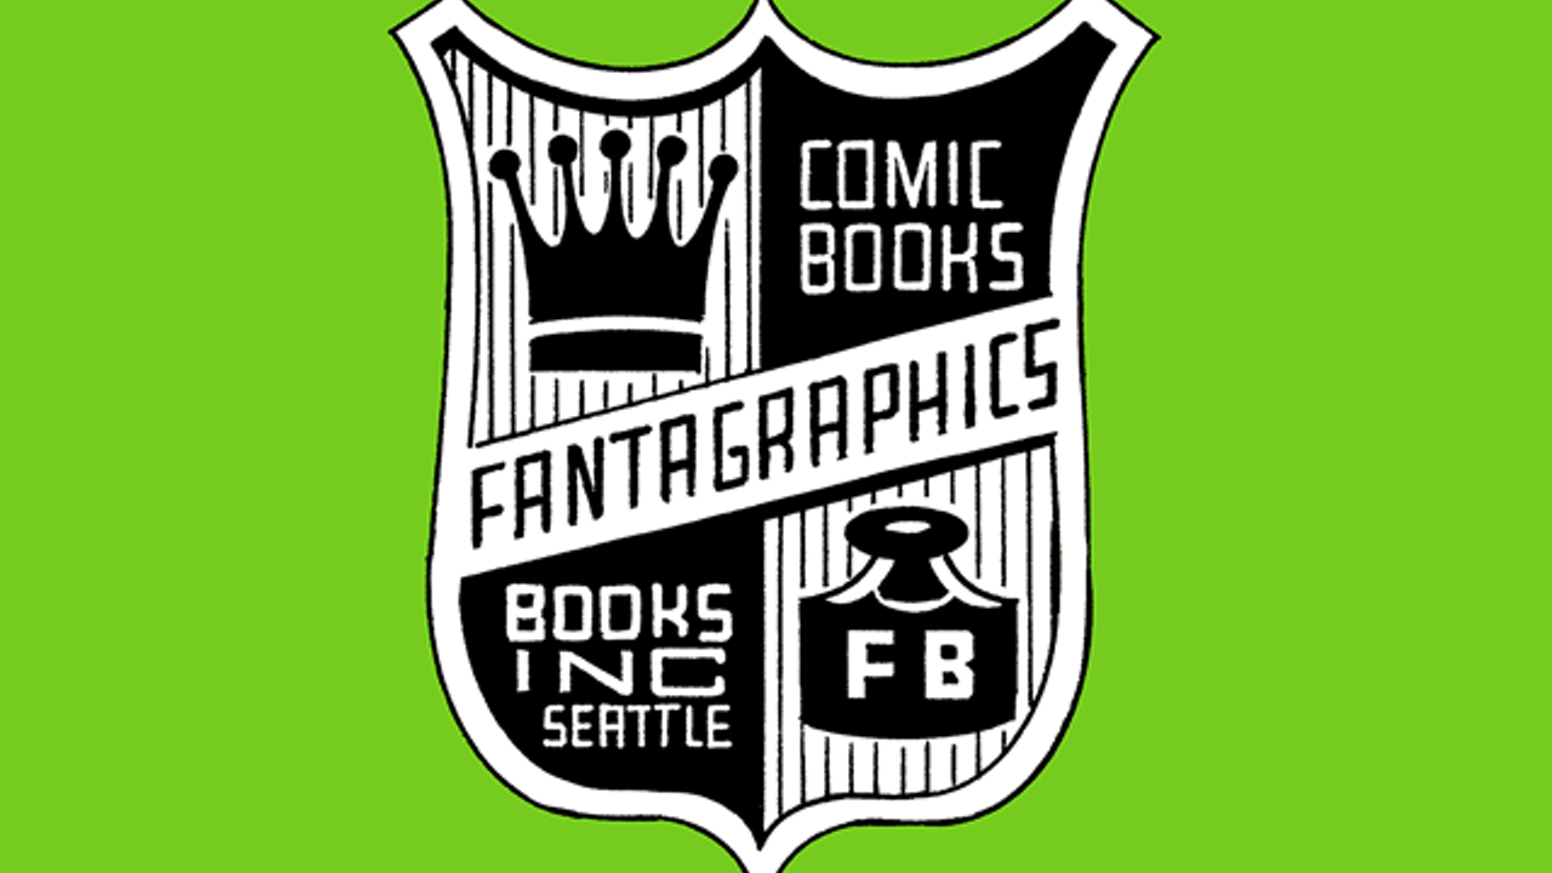 fantagraphics 2014 spring season 39 graphic novels books by gary